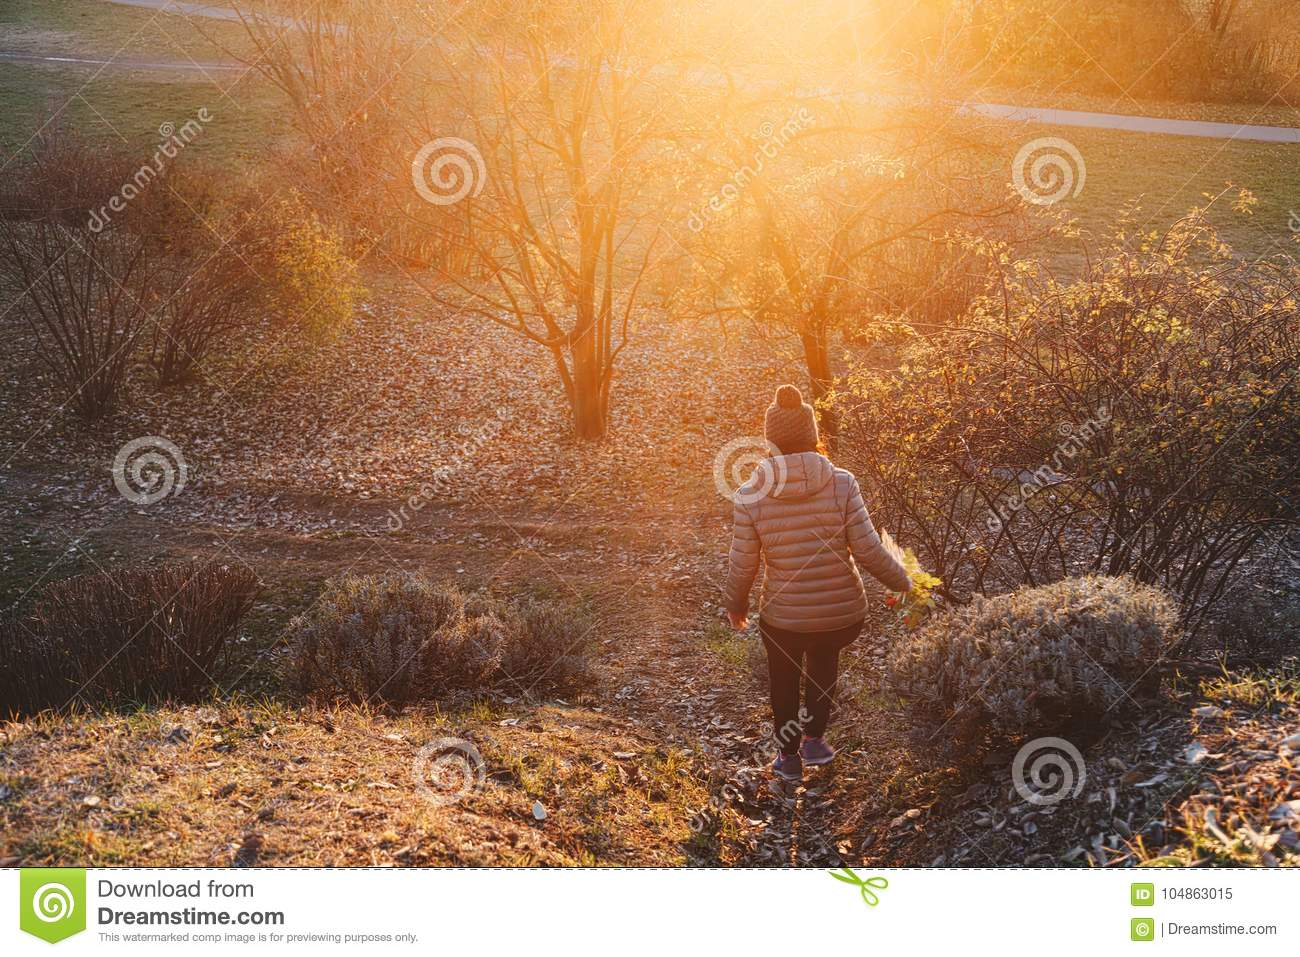 woman walking along a path with flower in her hand - happy traveler enjoying sunset view